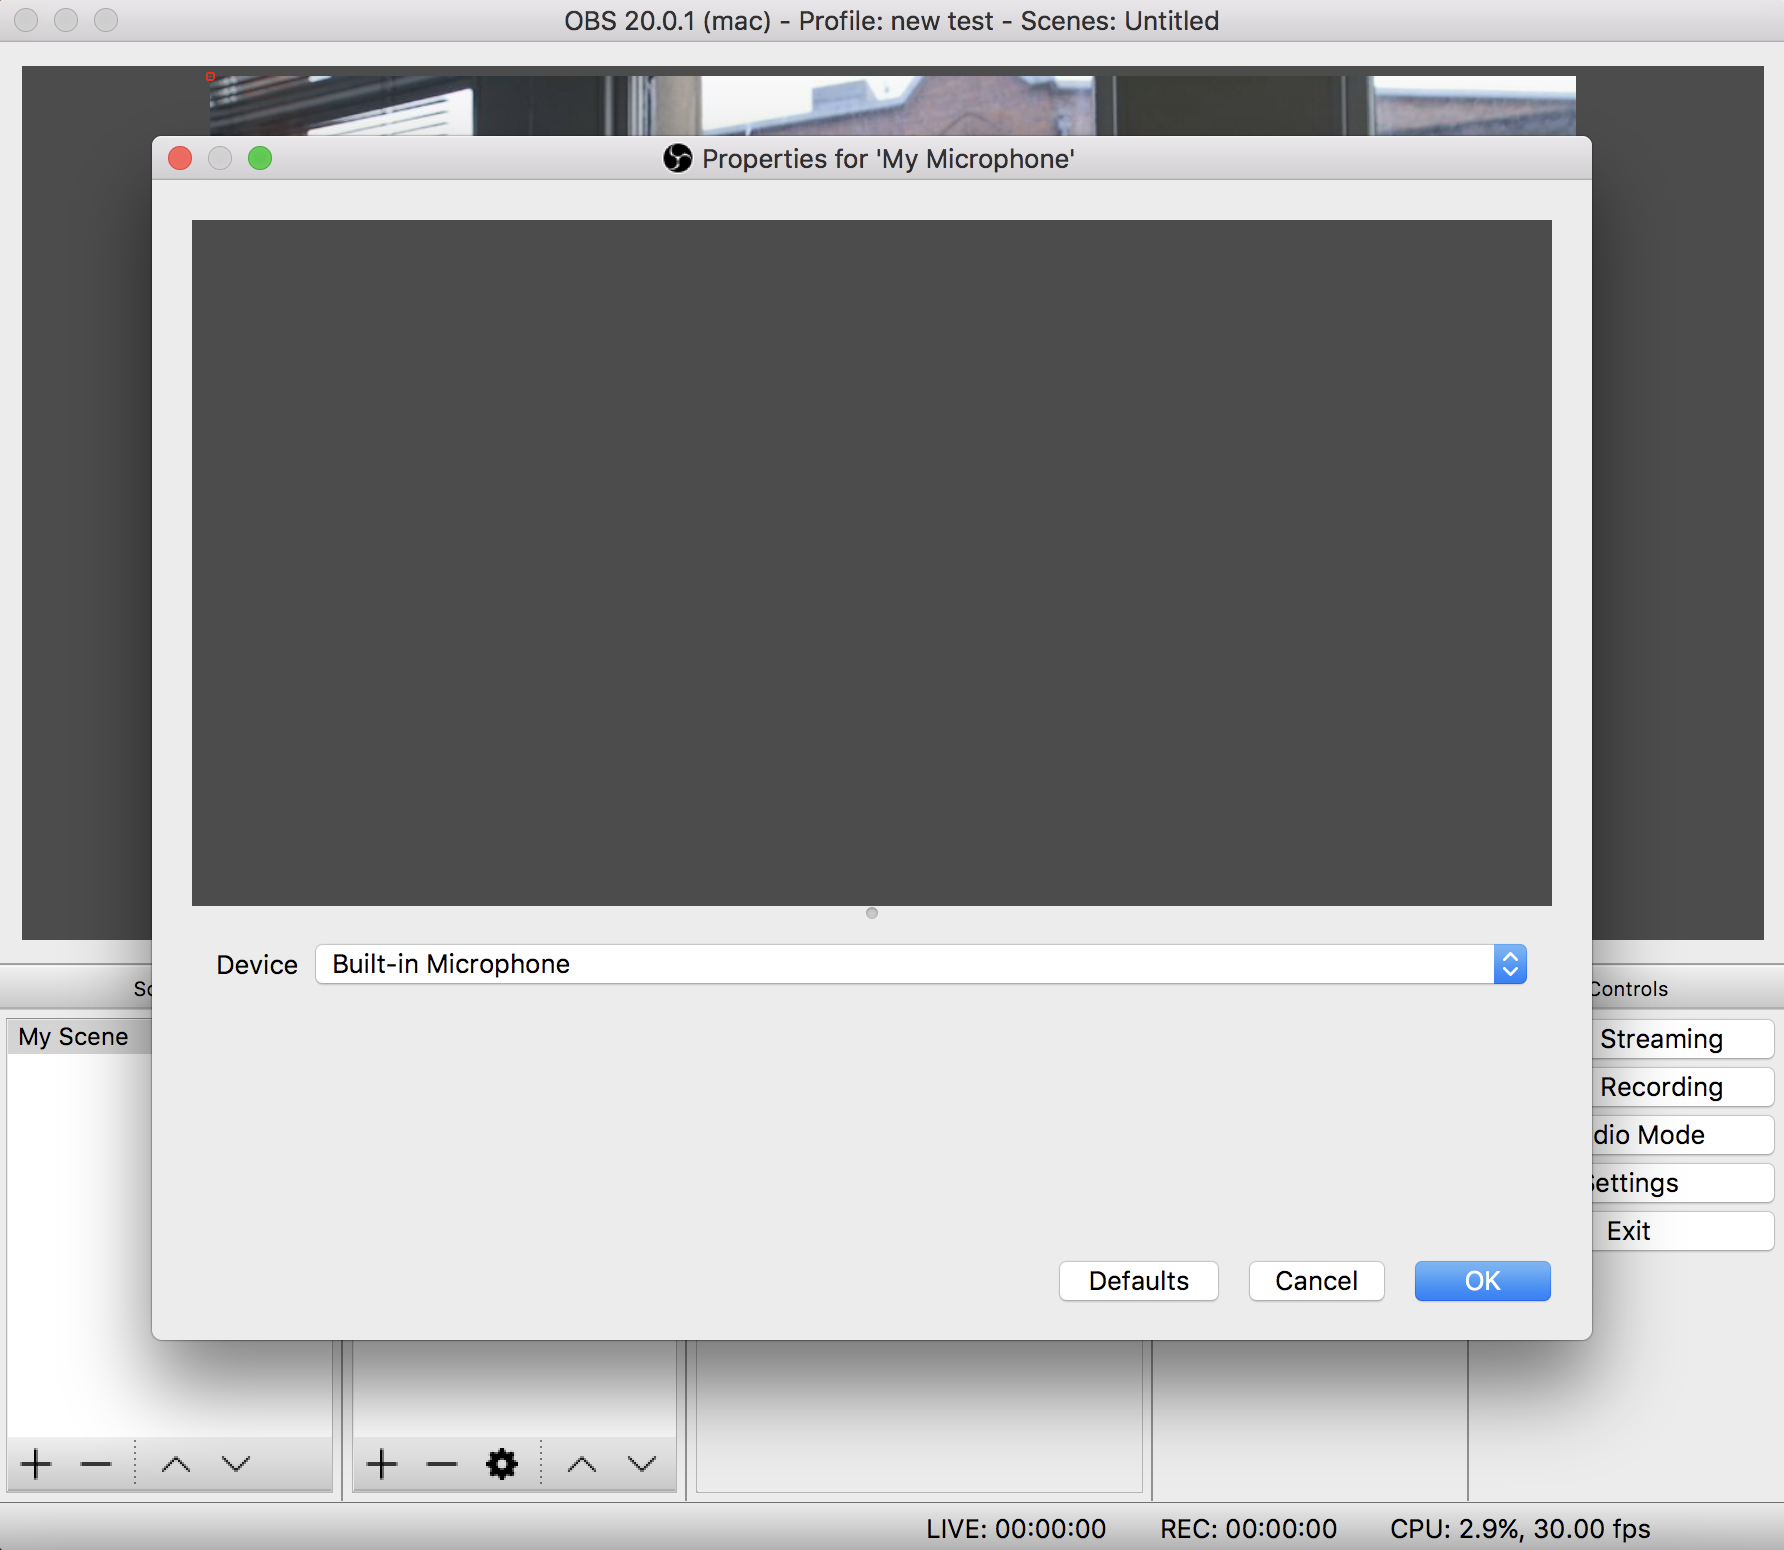 Configuring the microphone audio in OBS.